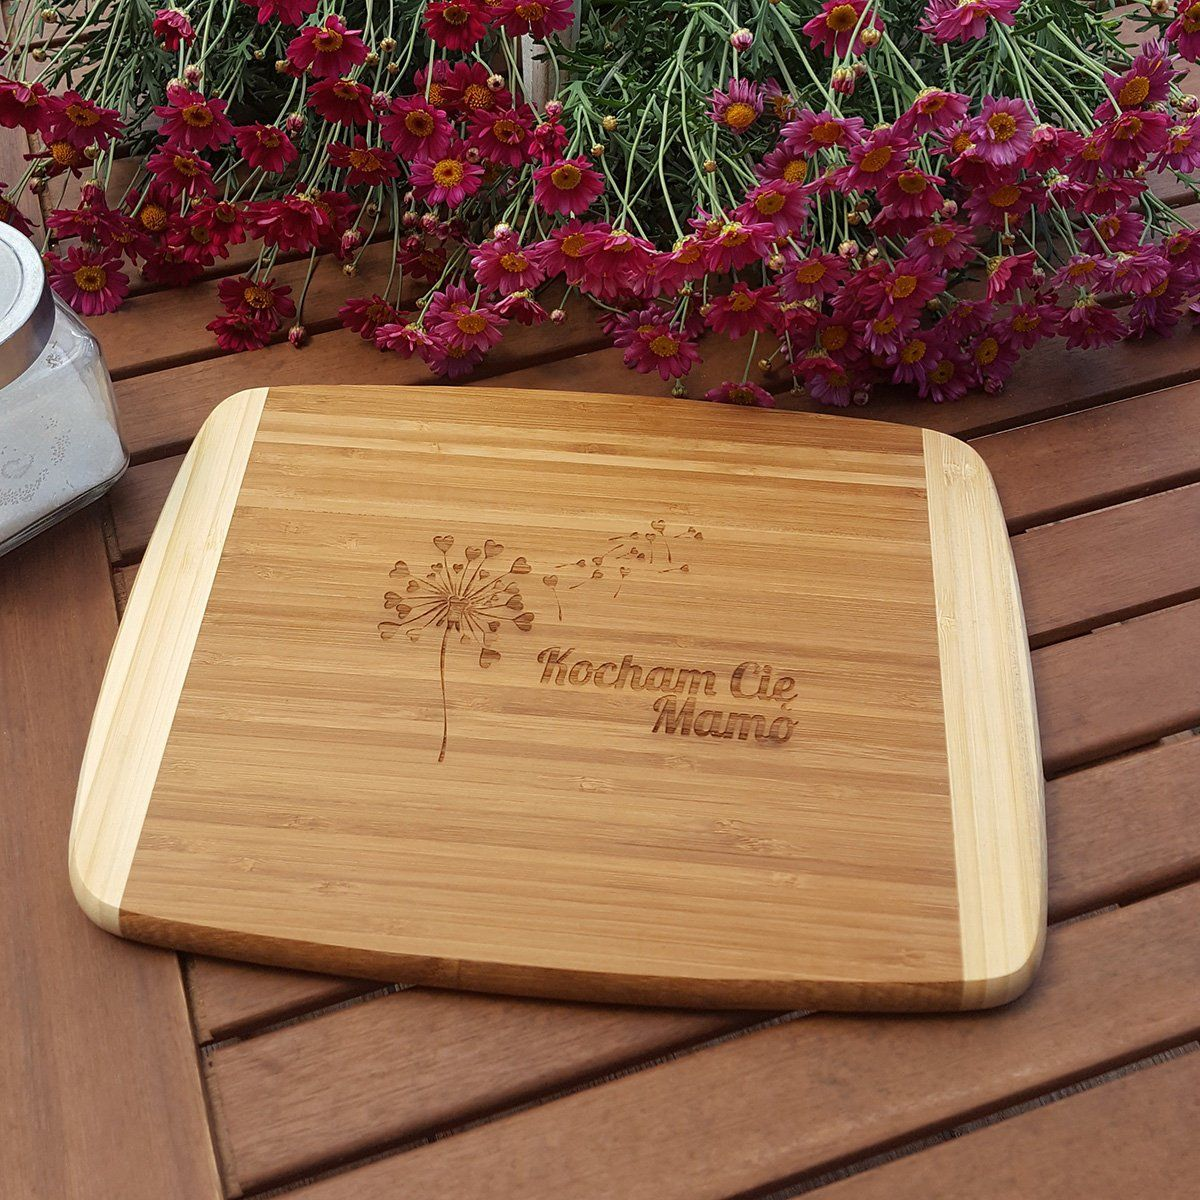 Bamboo Board Florina Claret With Engraver I Love You Mom A Super